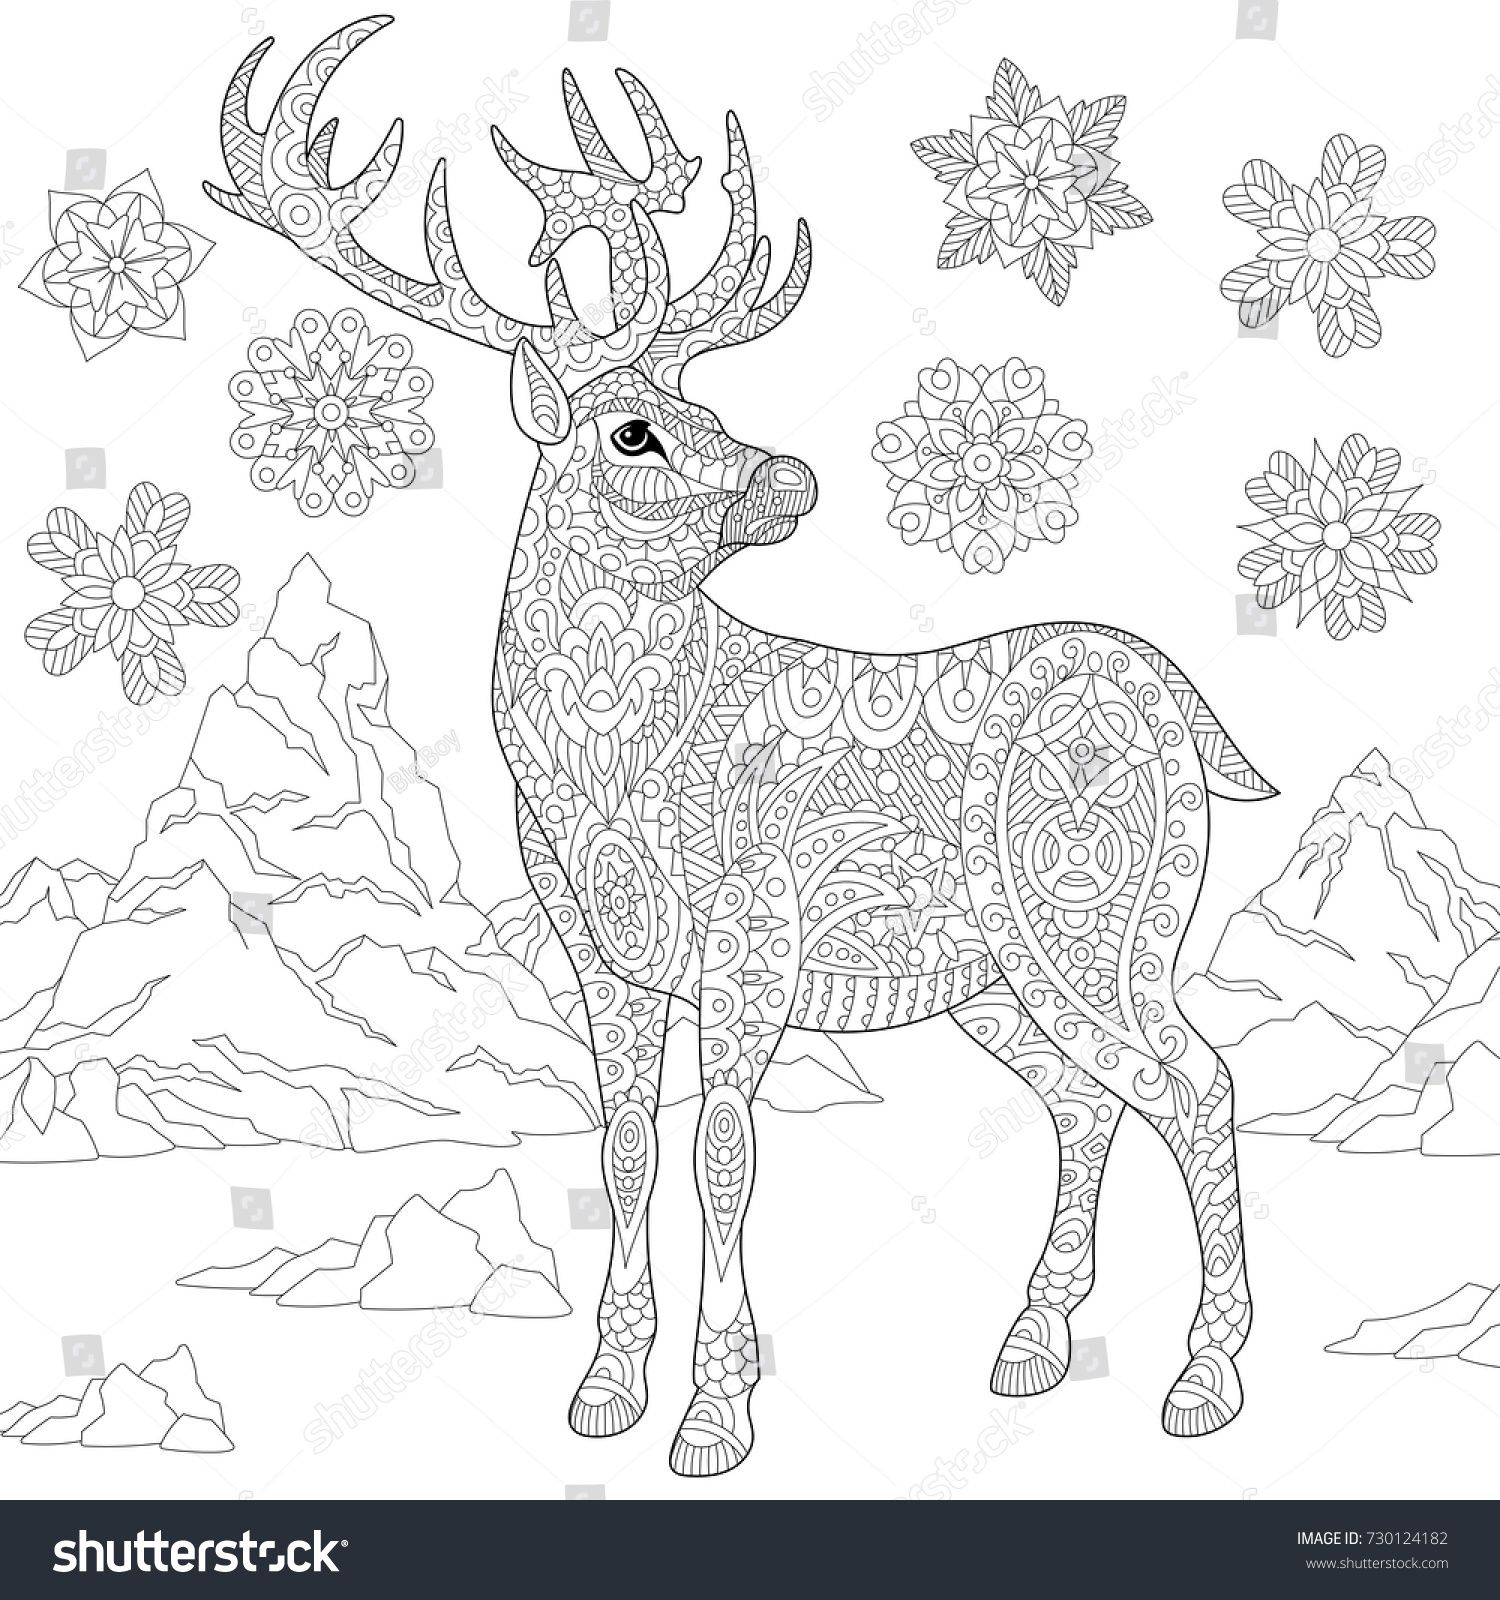 Adult Coloring Pages Deer. Christmas Coloring Page For Adults ... | 1600x1500